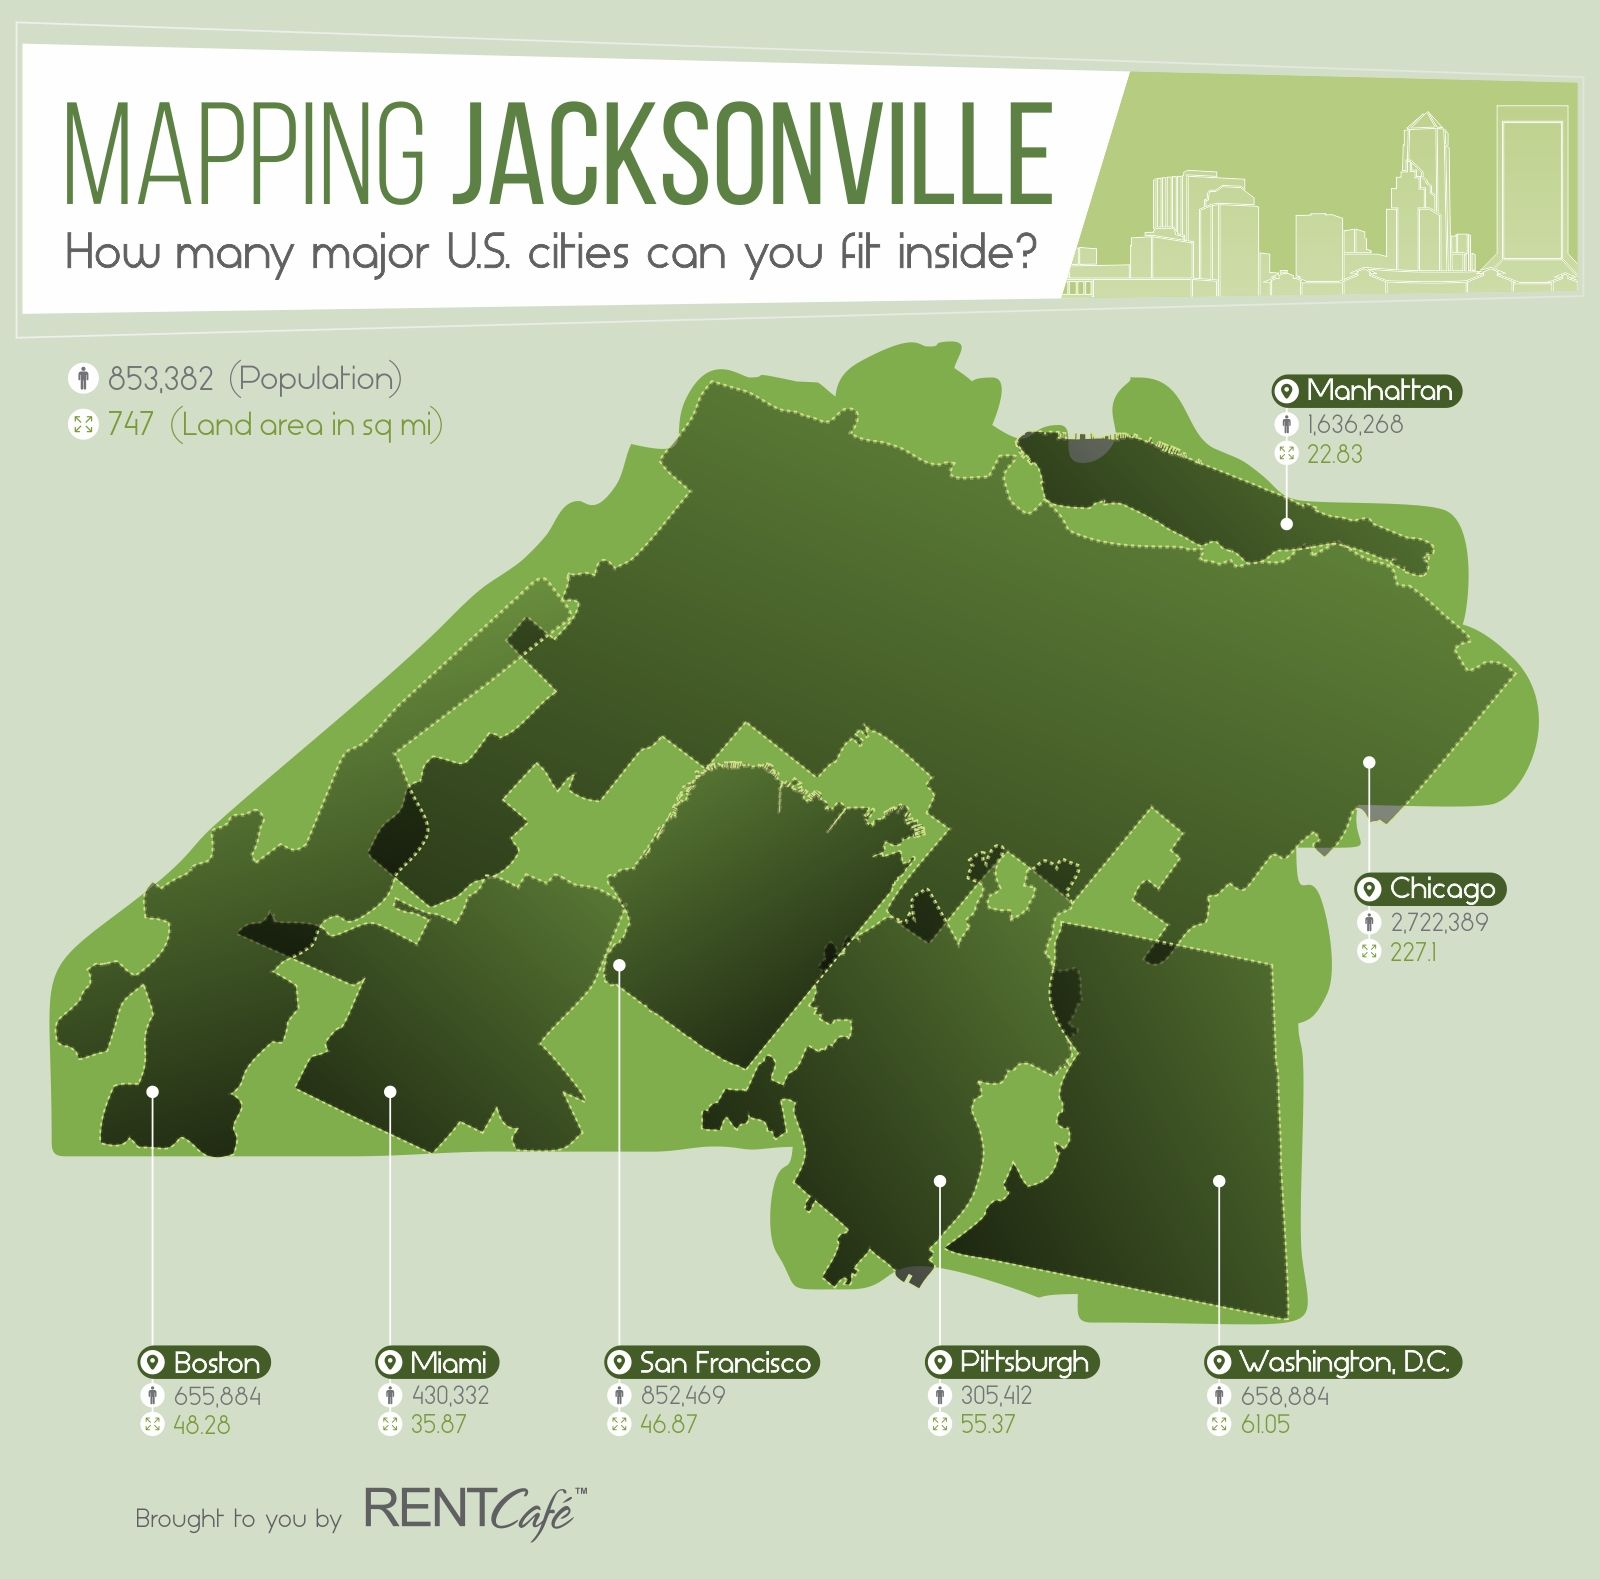 Mapping Jacksonville City How Many Major US Cities Can You Fit - Jacksonville jacksonville on a us map